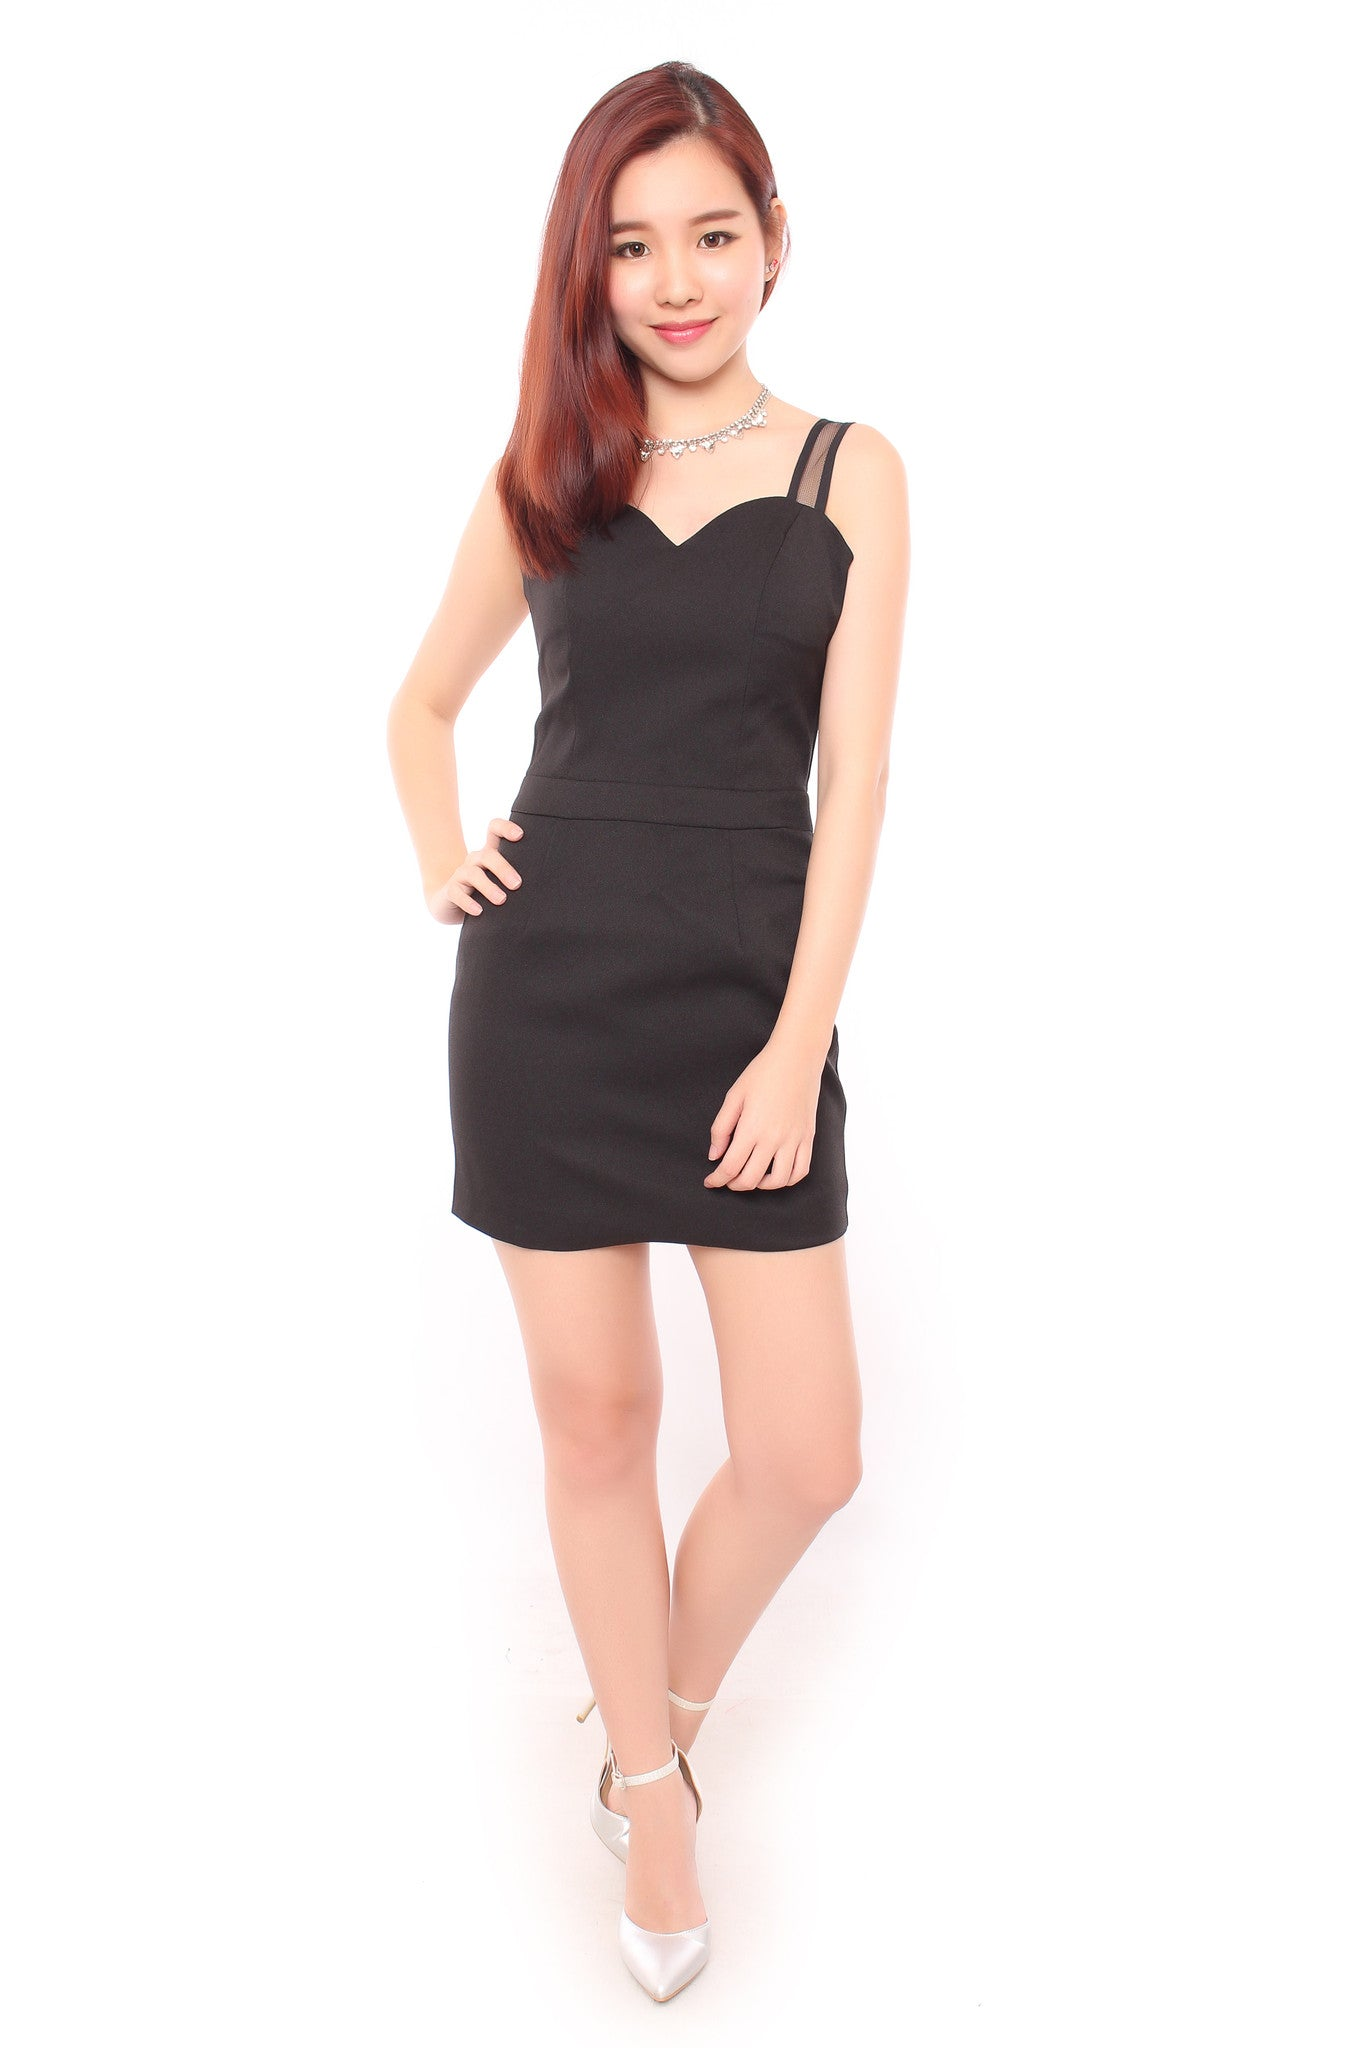 ANTOINETTE dress in Black